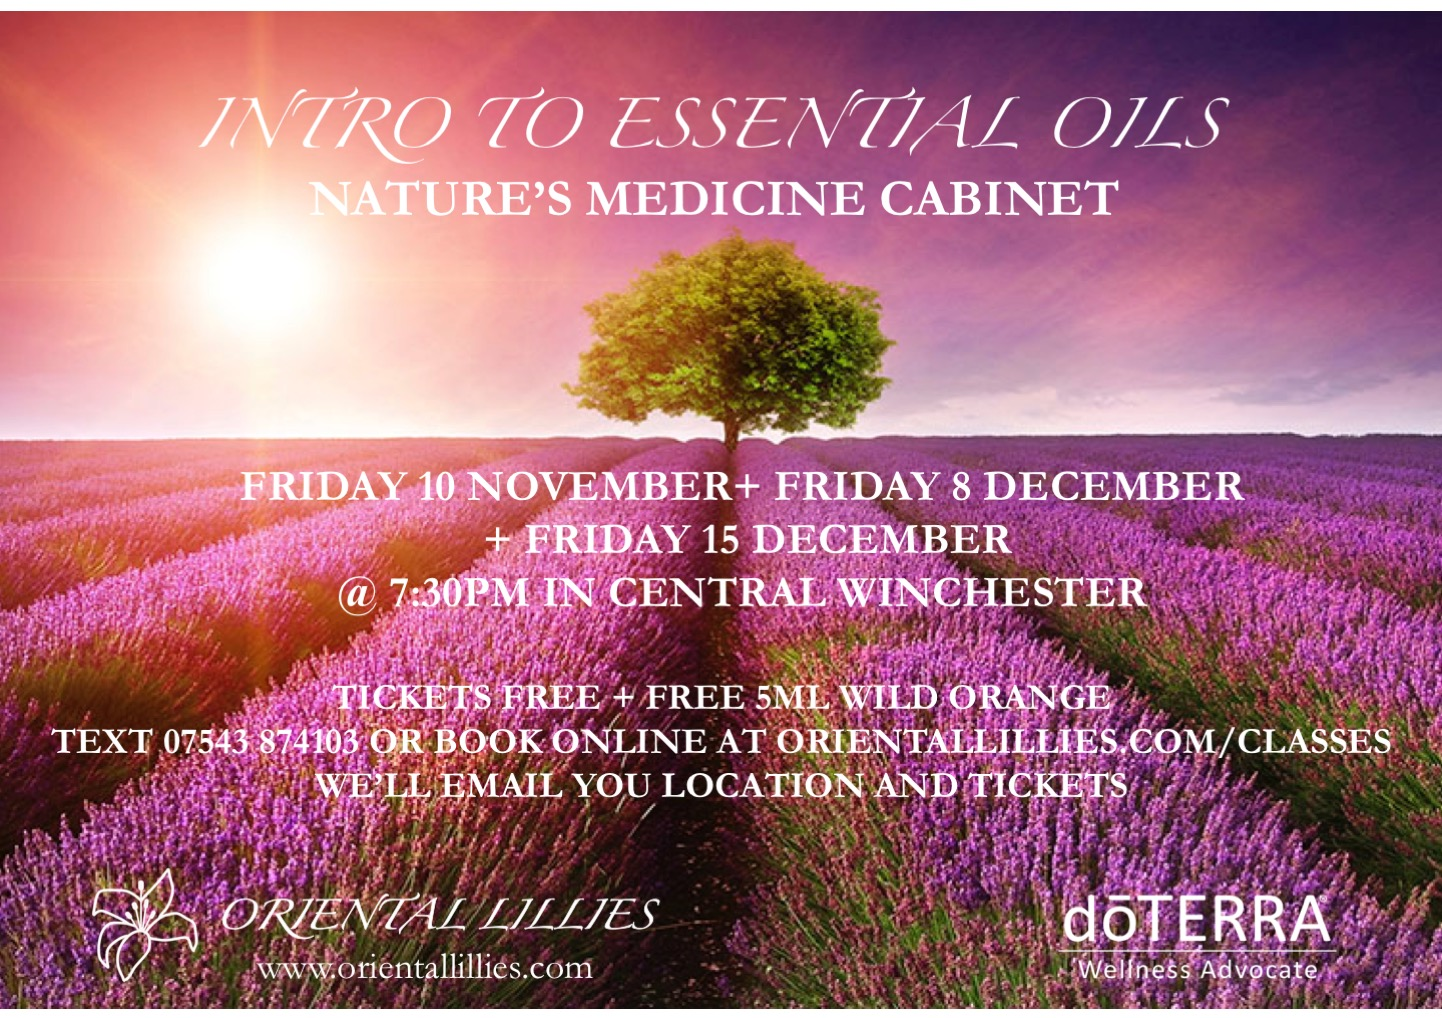 Intro to essential oils - Nature's medicine cabinet